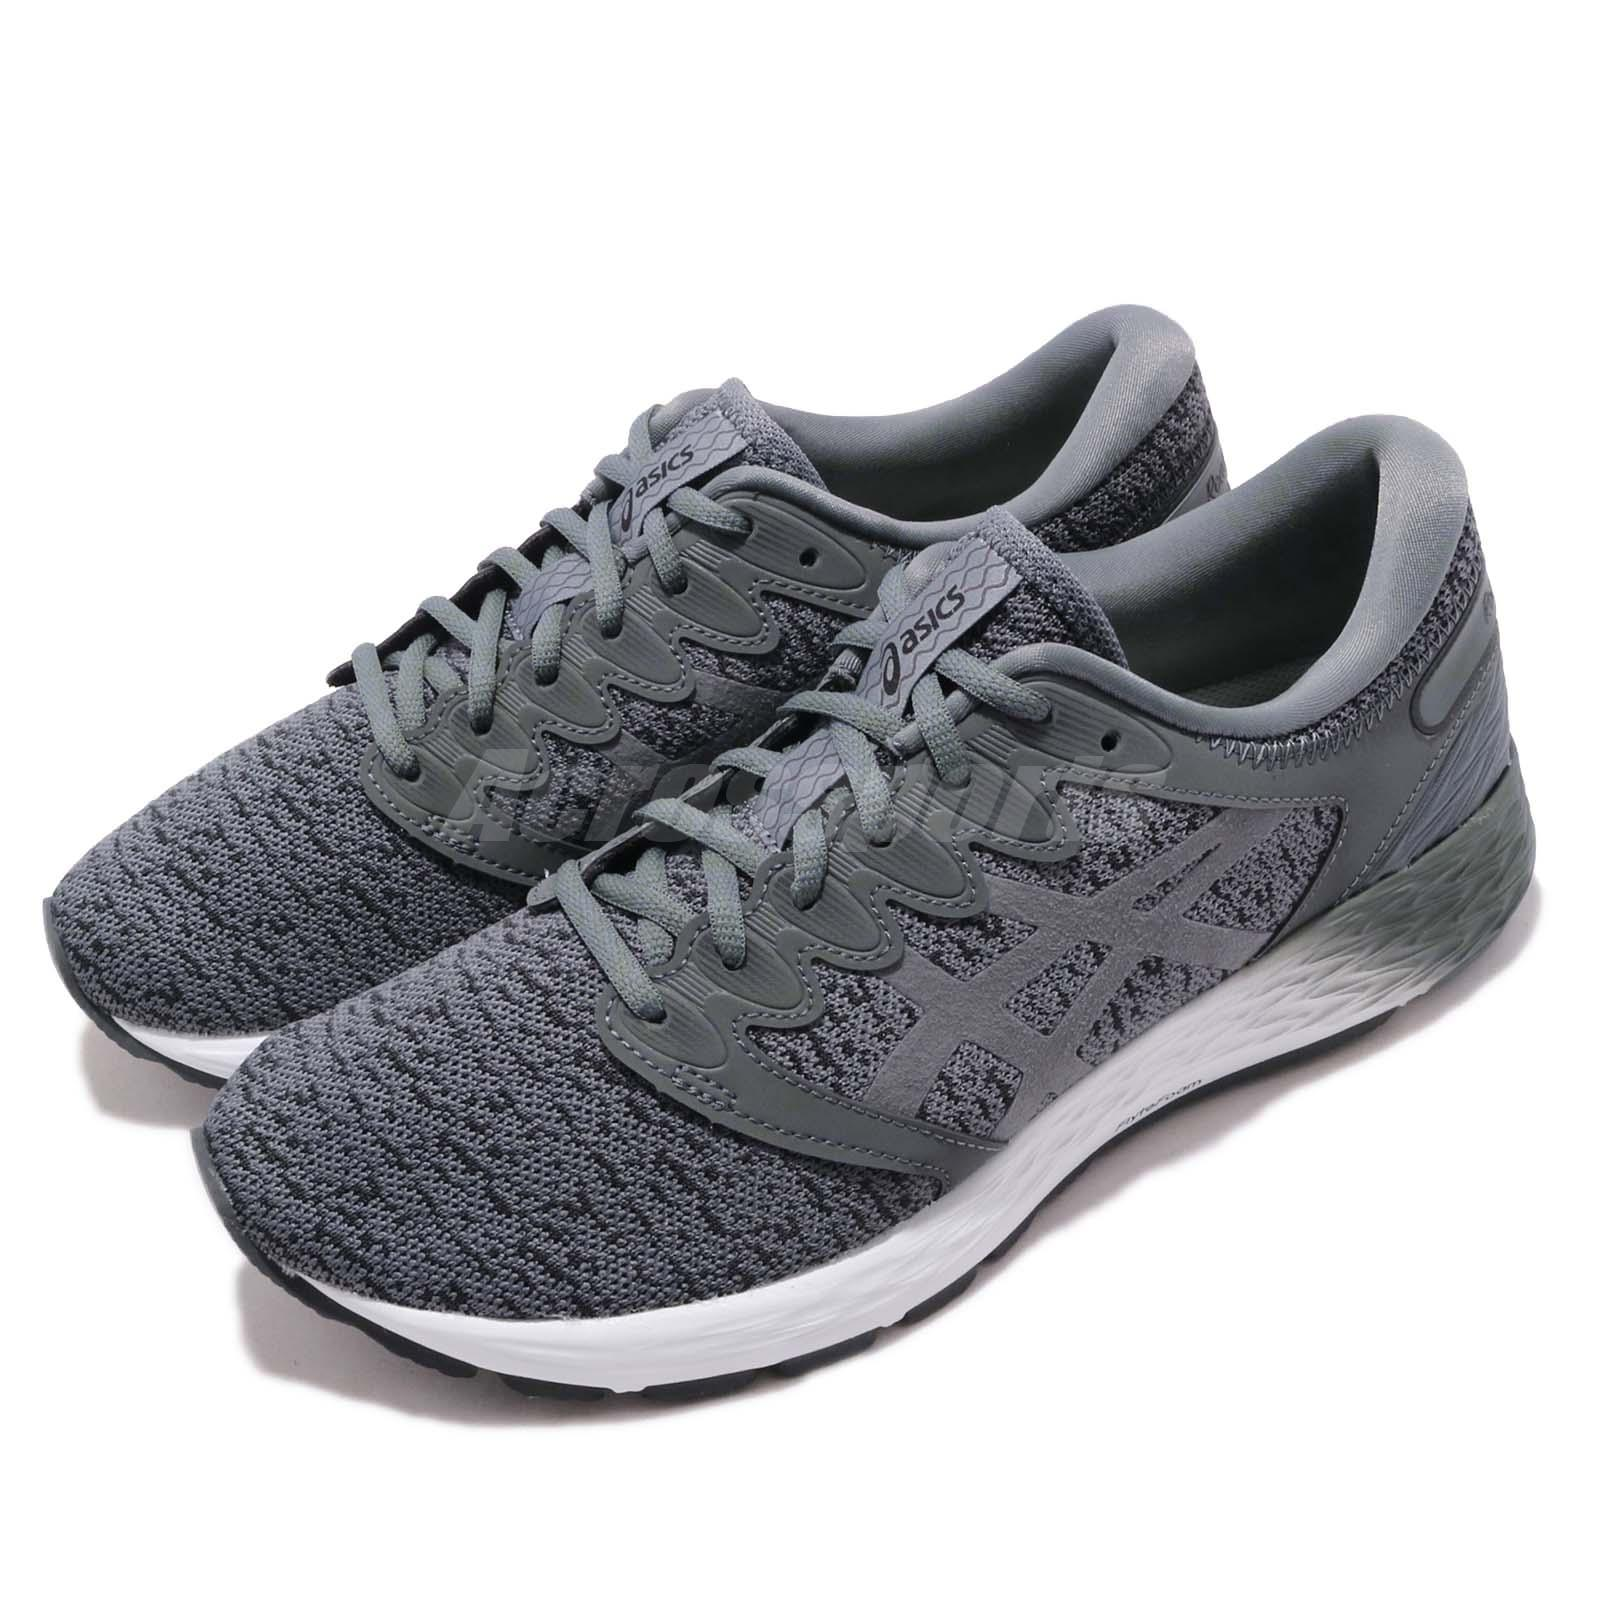 Details about Asics RoadHawk FF 2 MX Grey Men Running Training Shoes  Sneakers 1011A255-021